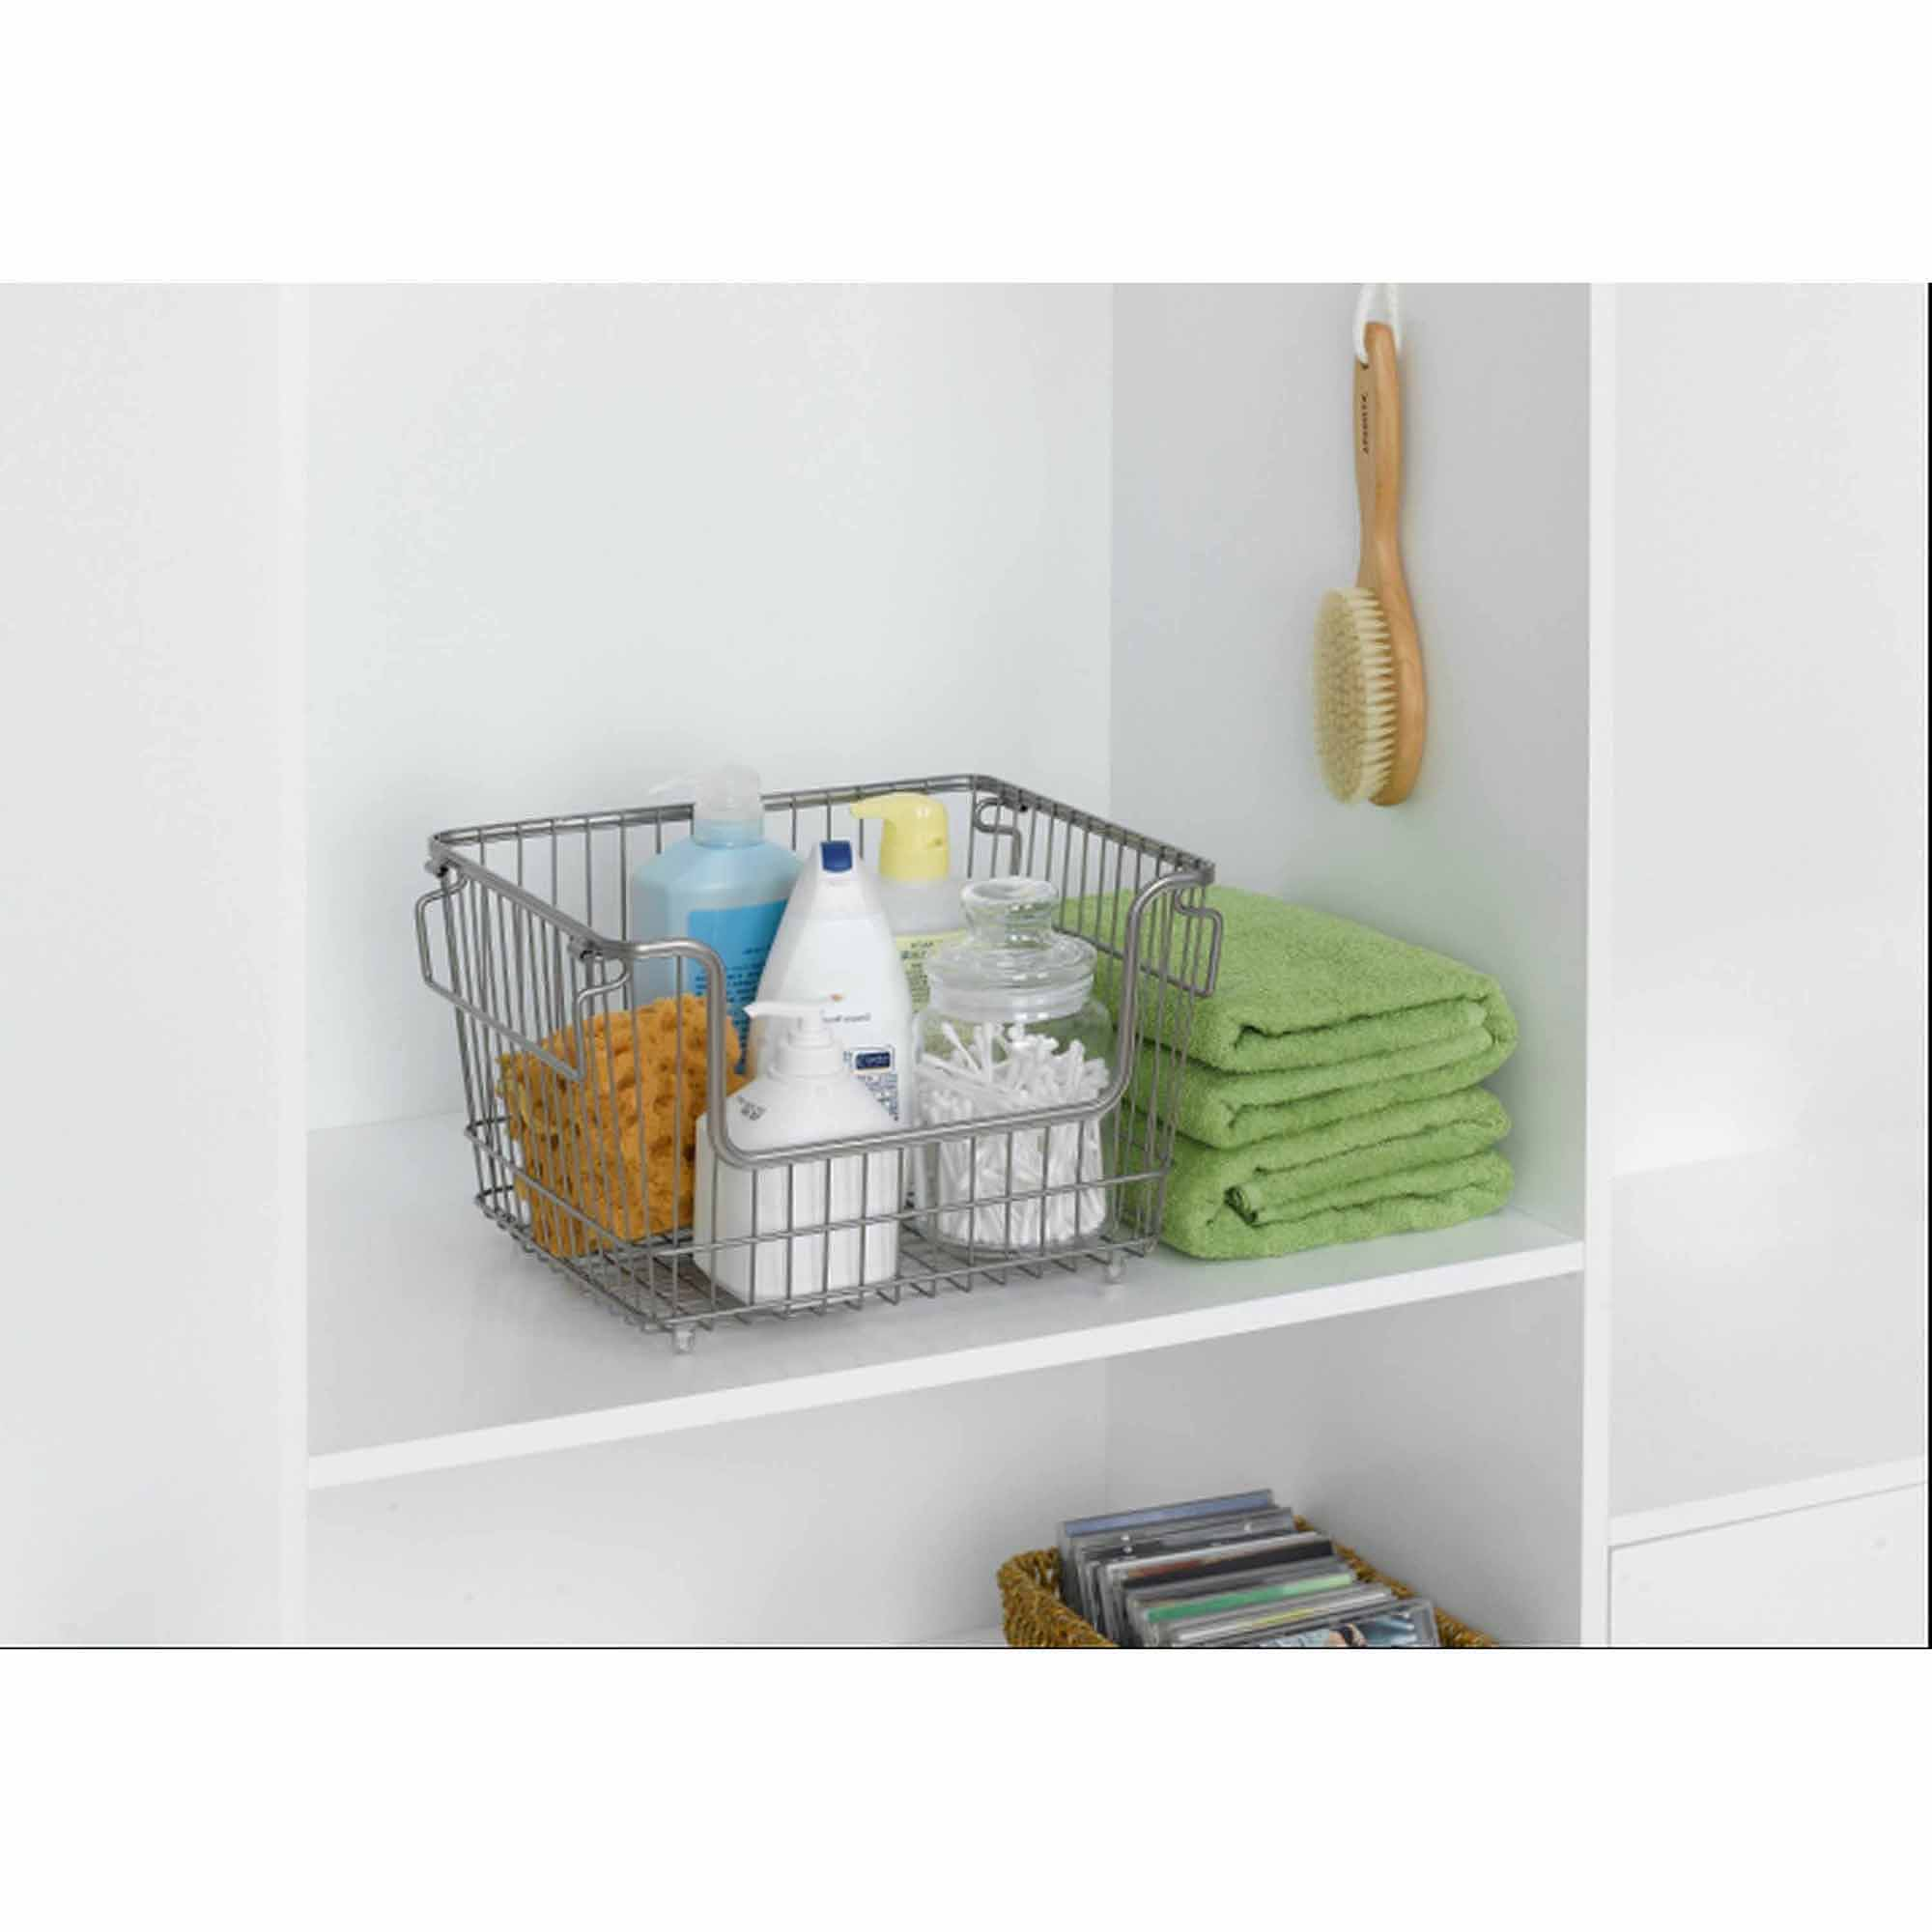 Chapter Large Stackable Wire Basket, Nickel - Walmart.com